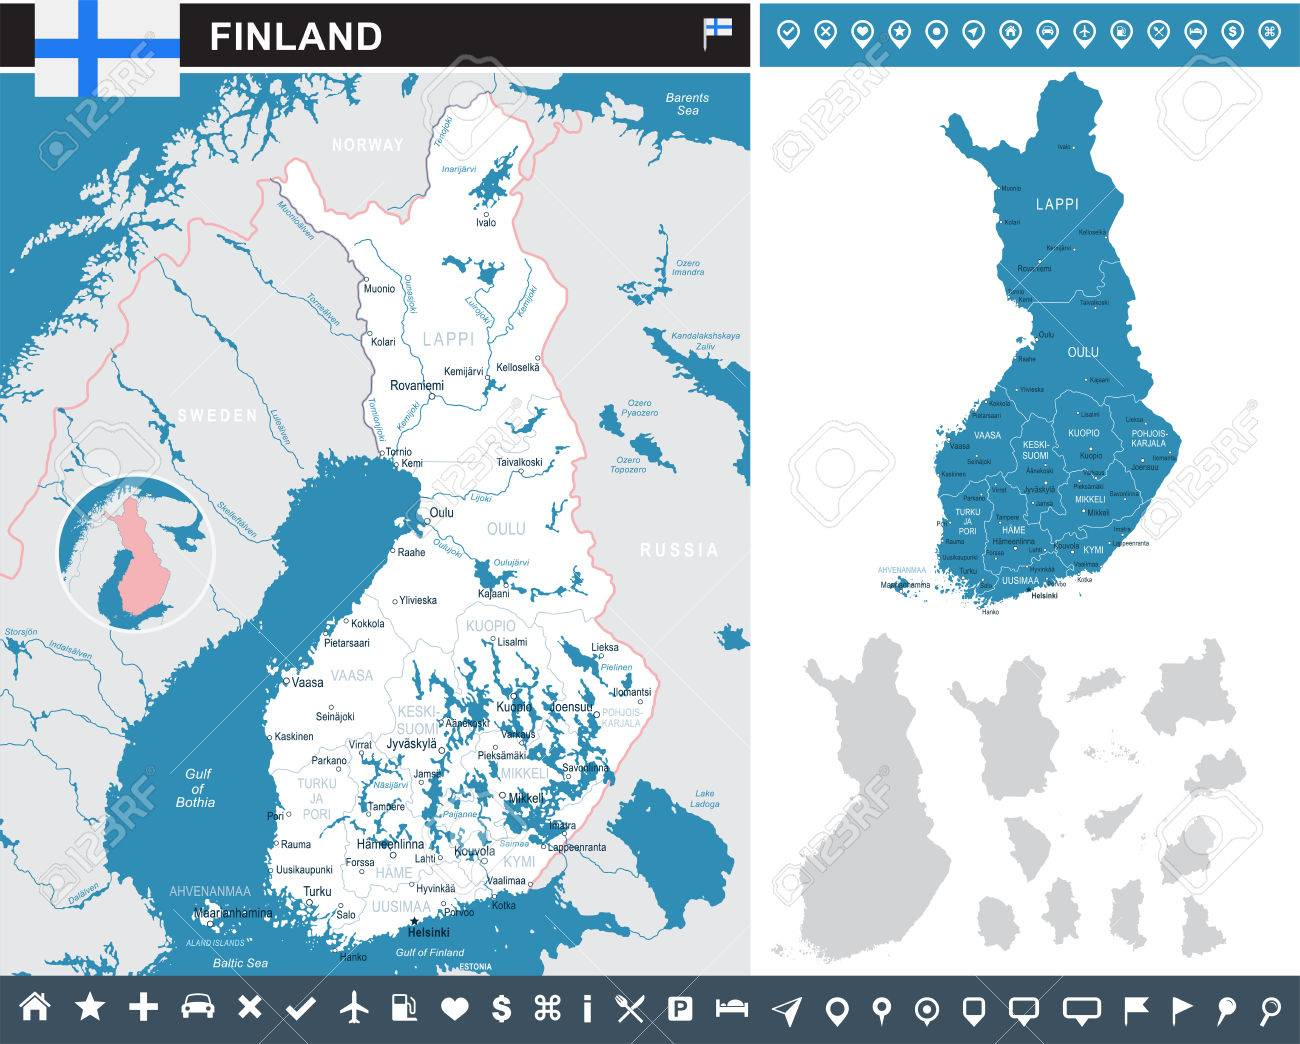 Finland Infographic Map And Flag Vector Illustration Royalty Free